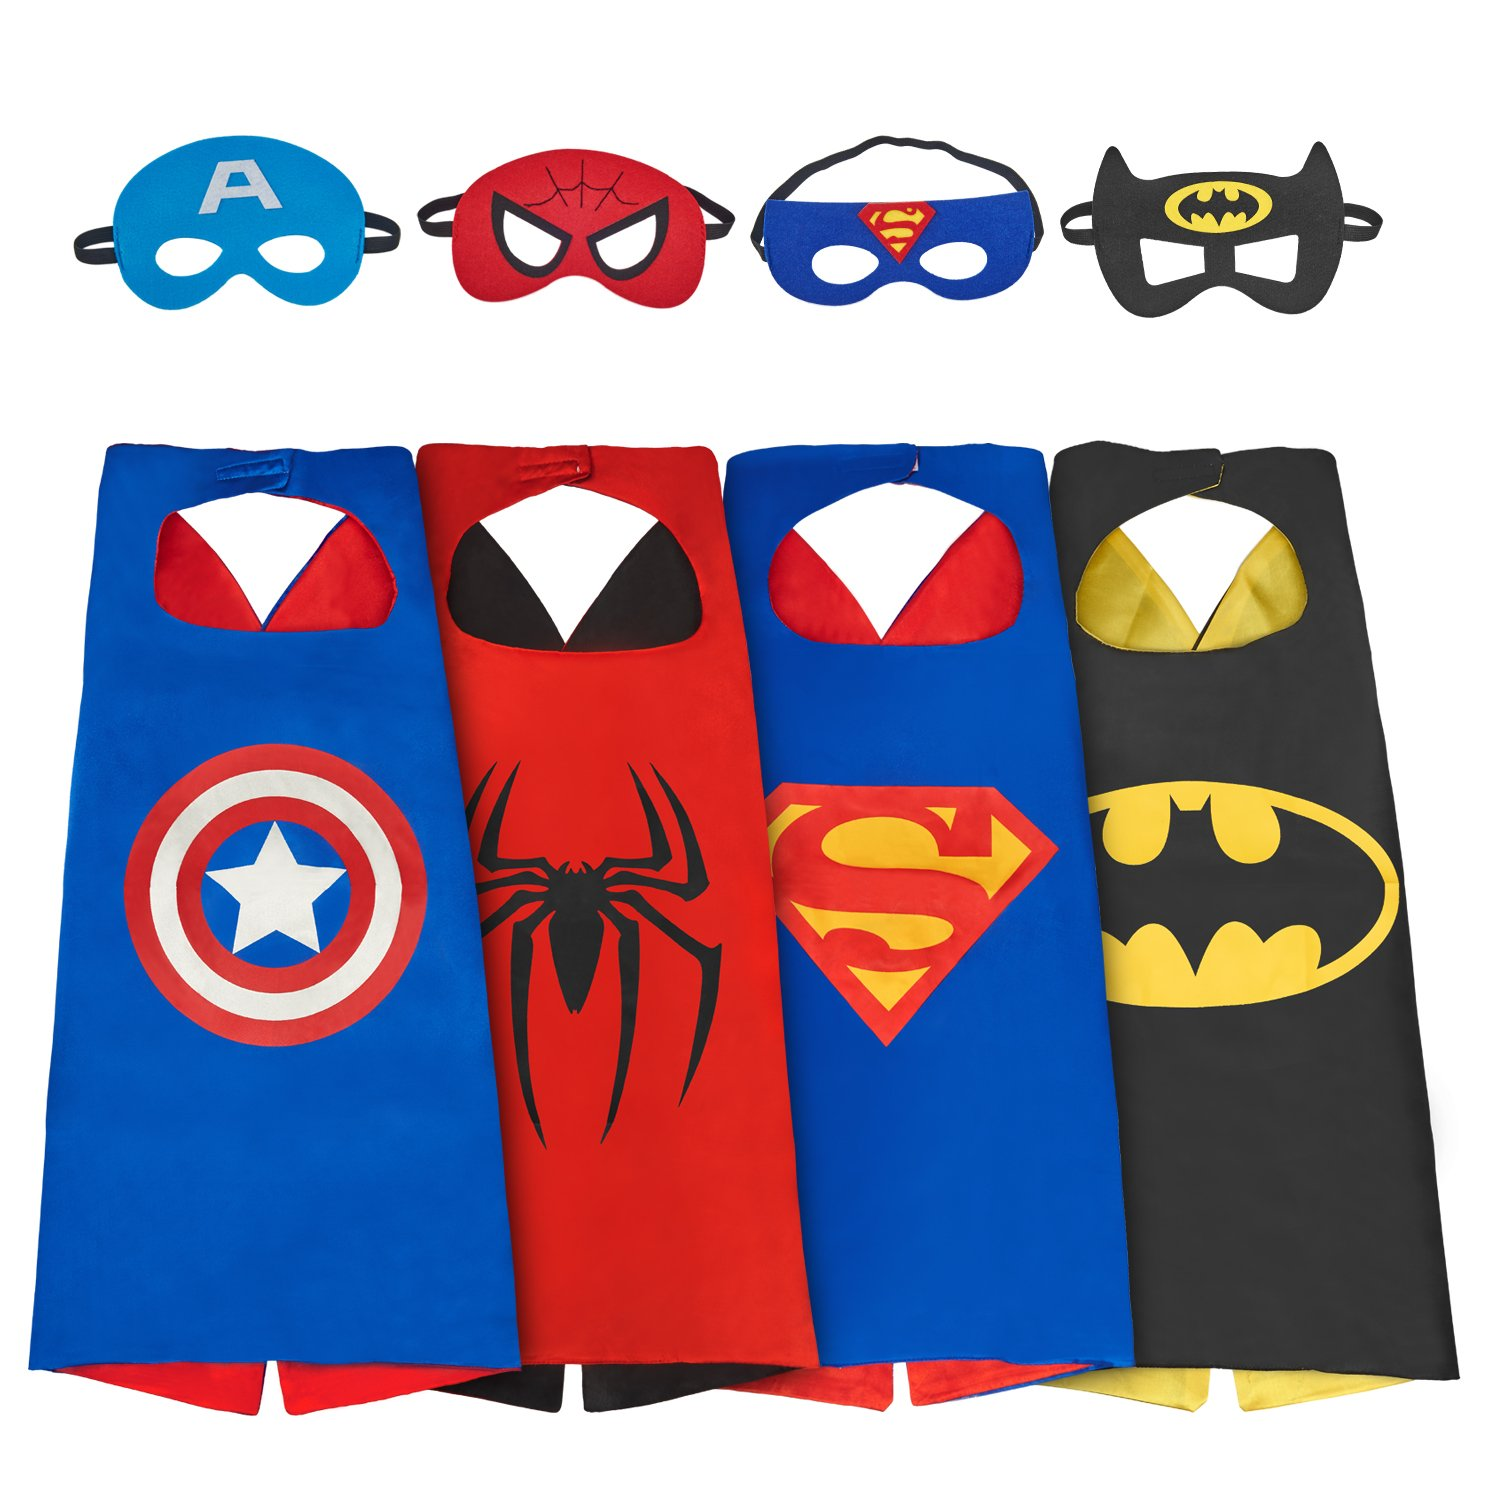 Babylian Dress up Costume Set of Superhero 4 Satin Capes with Felt Masks for Kids (4 Pack)